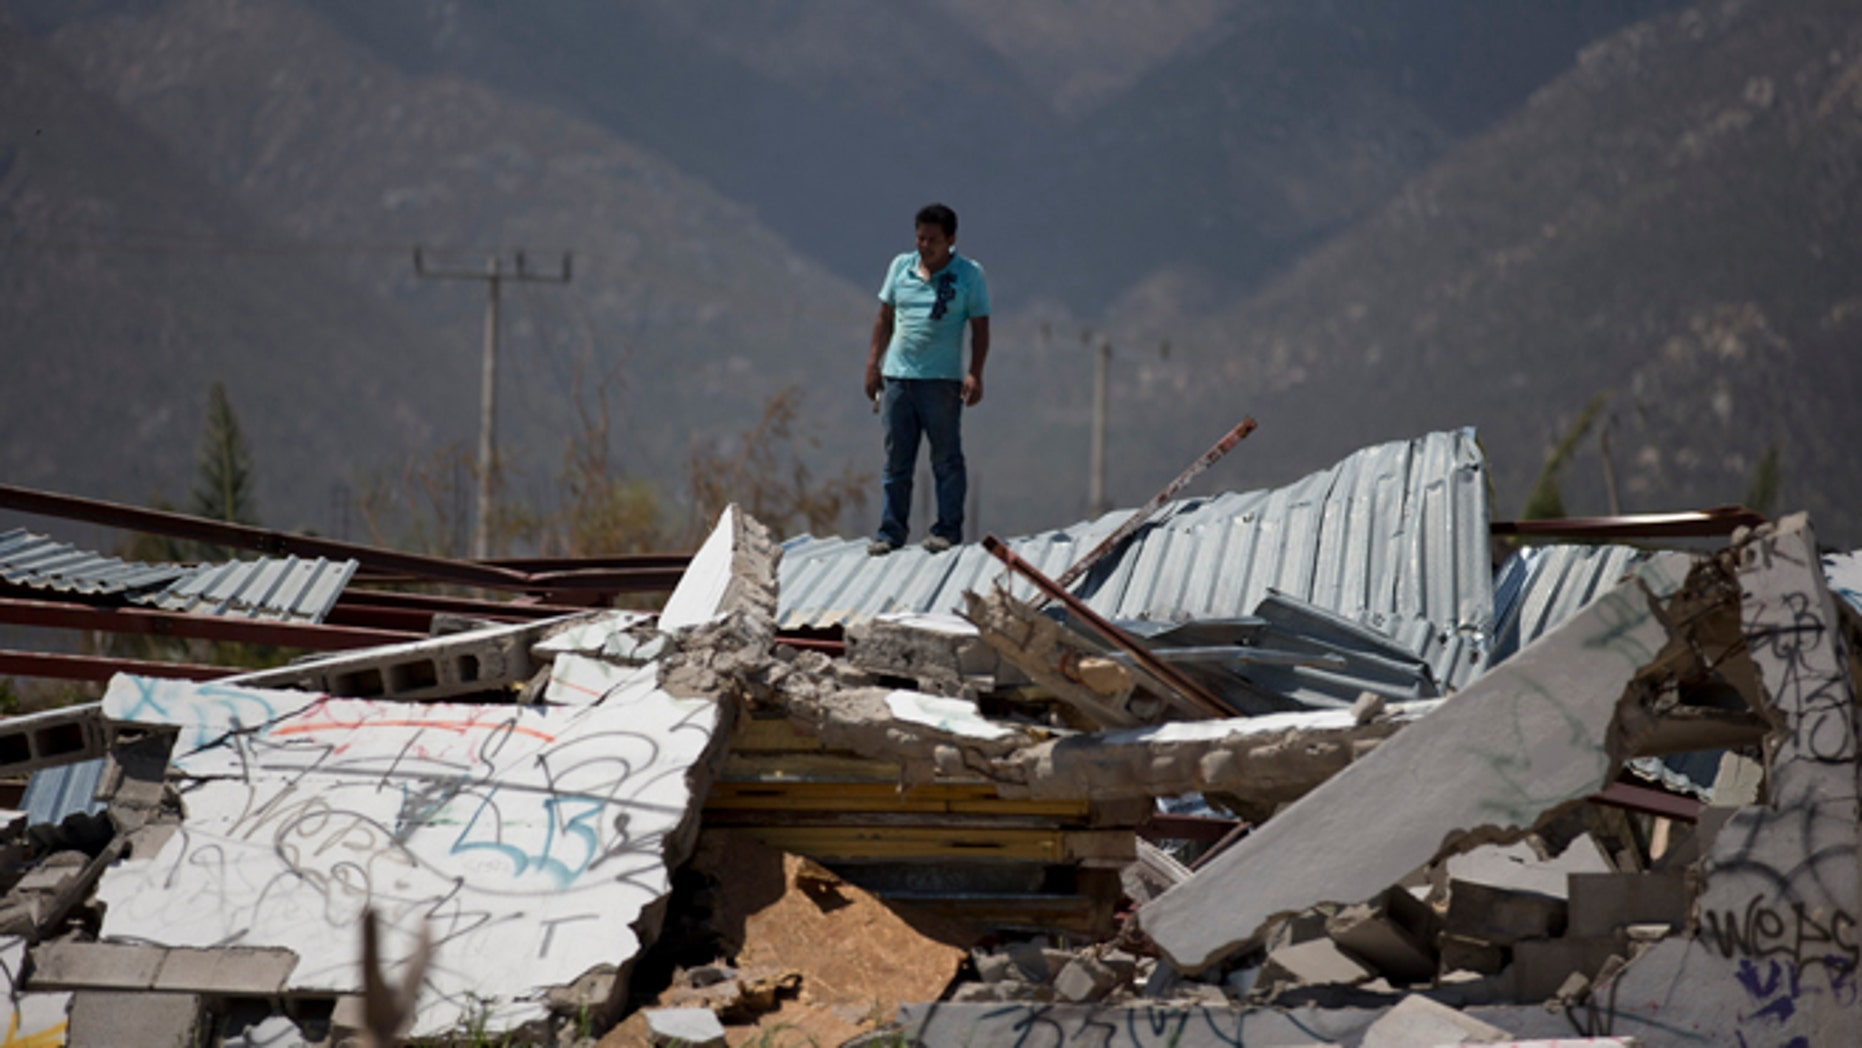 A man stands on top of a collapsed warehouse, looking for building material to salvage after Hurricane Odile destroyed his home in San Jose de los Cabos, Mexico, Thursday, Sept. 18, 2014. Water and electricity service remained out and phone service was intermittent. Odile struck late Sunday as a Category 3 storm. (AP Photo/Dario Lopez-Mills)